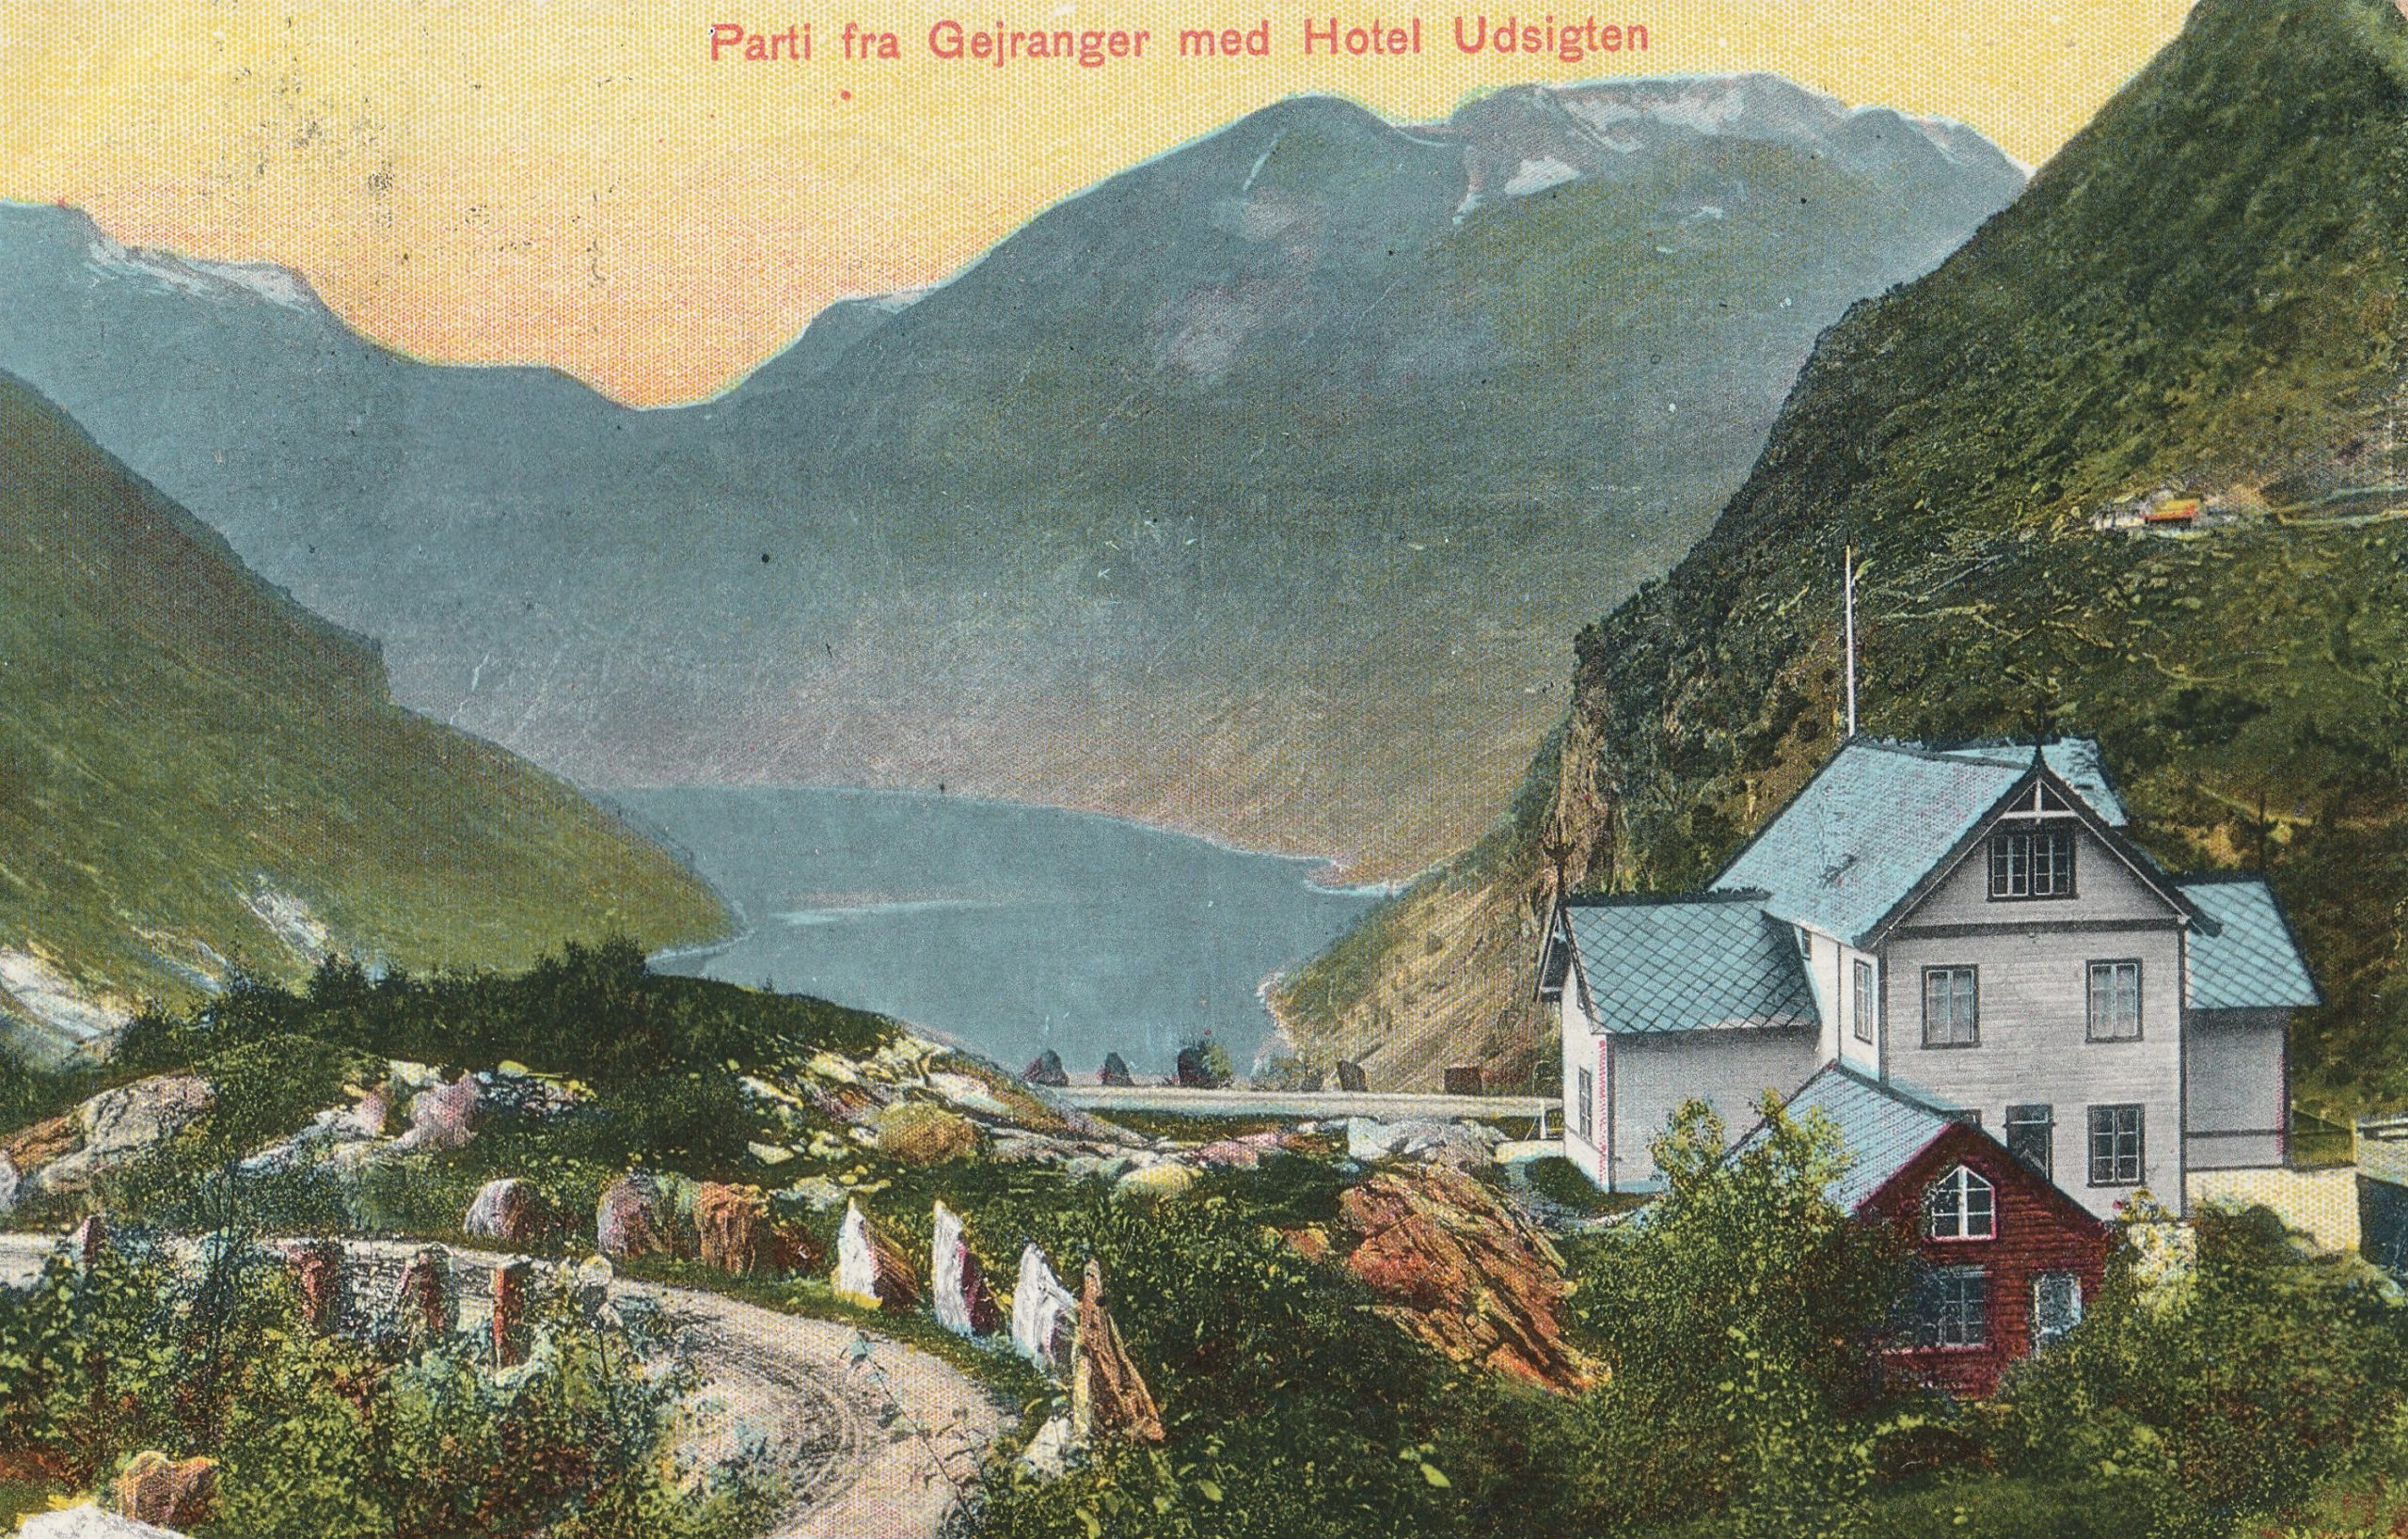 FJORDS NORWAY - Old Photos from the Geirangerfjord